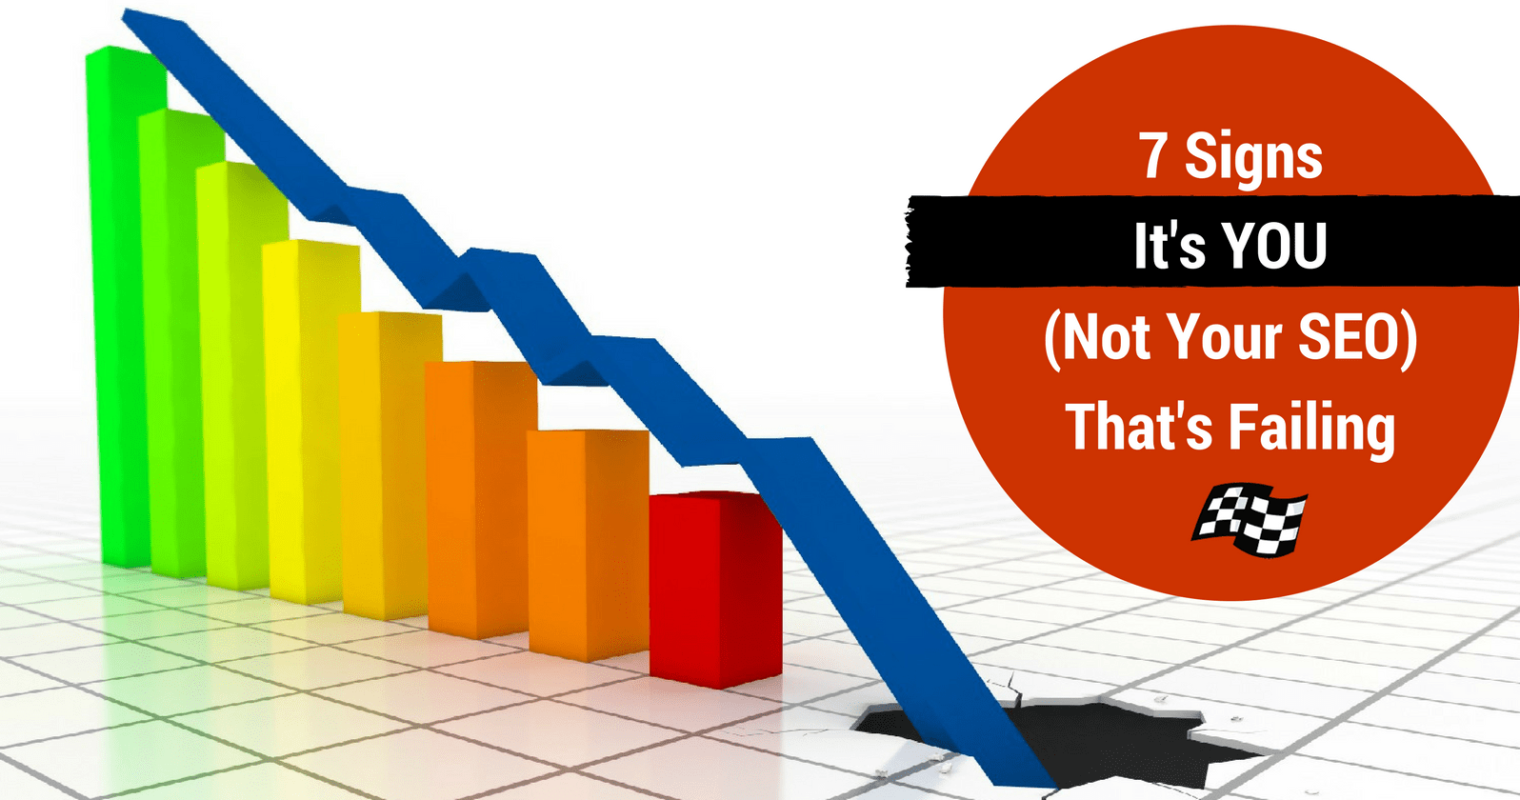 Don't Fire Your SEO Yet! 7 Signs SEO Failure May Be Your Fault